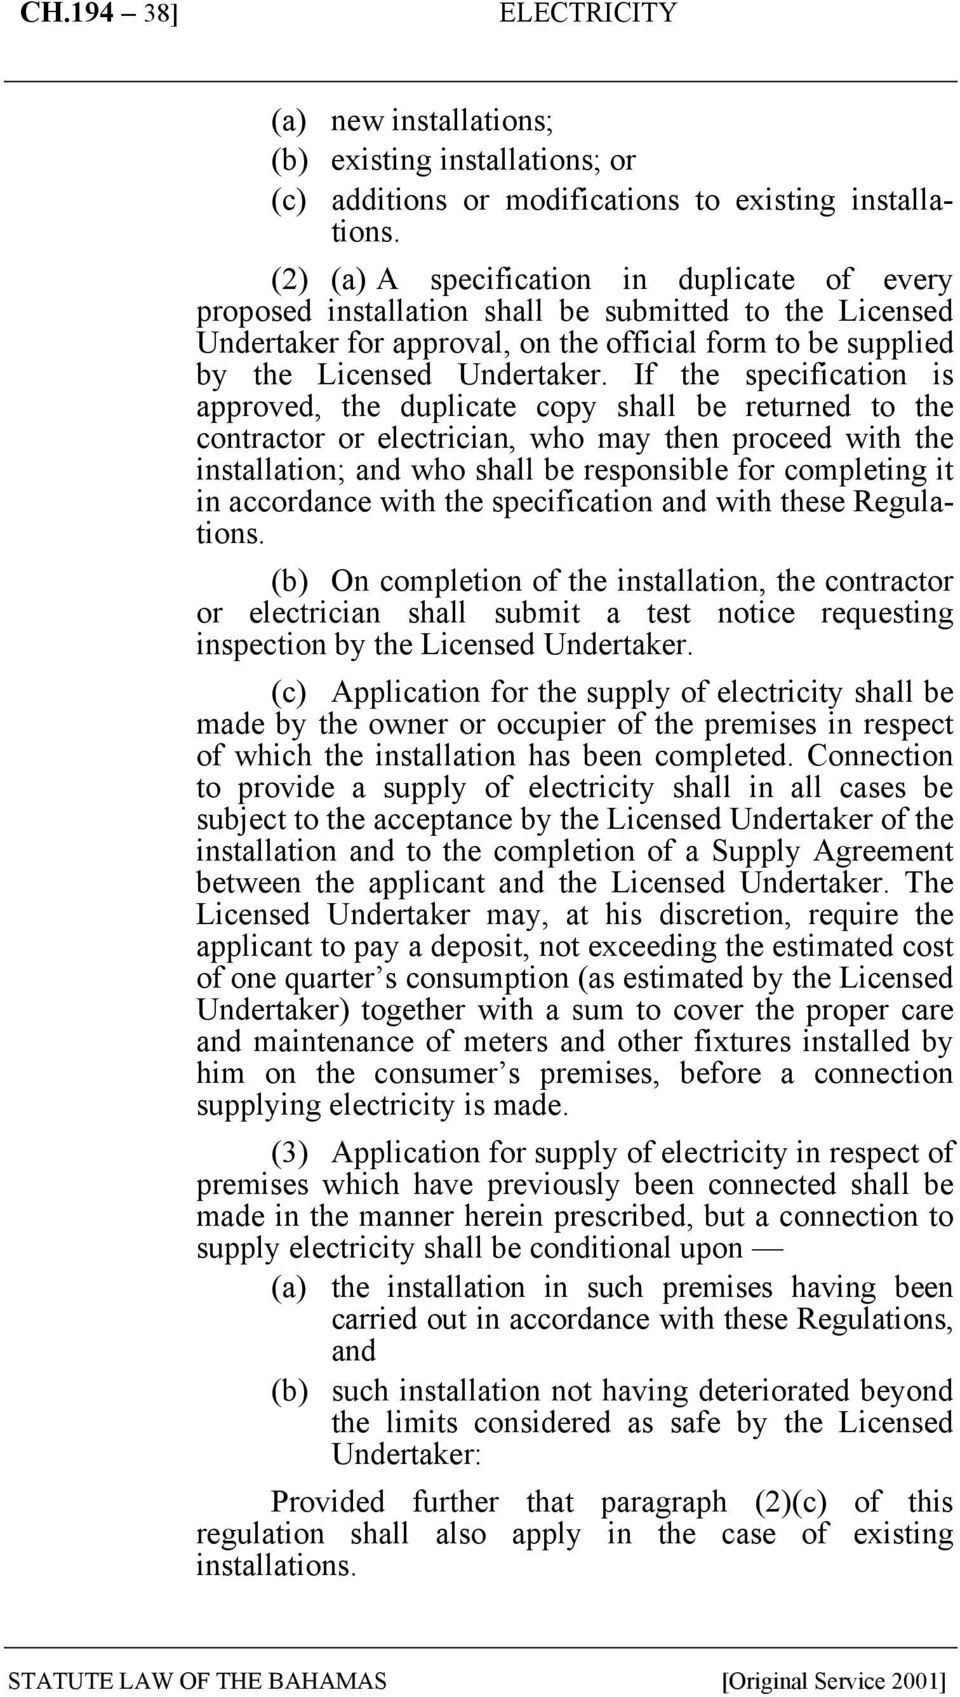 If the specification is approved, the duplicate copy shall be returned to the contractor or electrician, who may then proceed with the installation; and who shall be responsible for completing it in